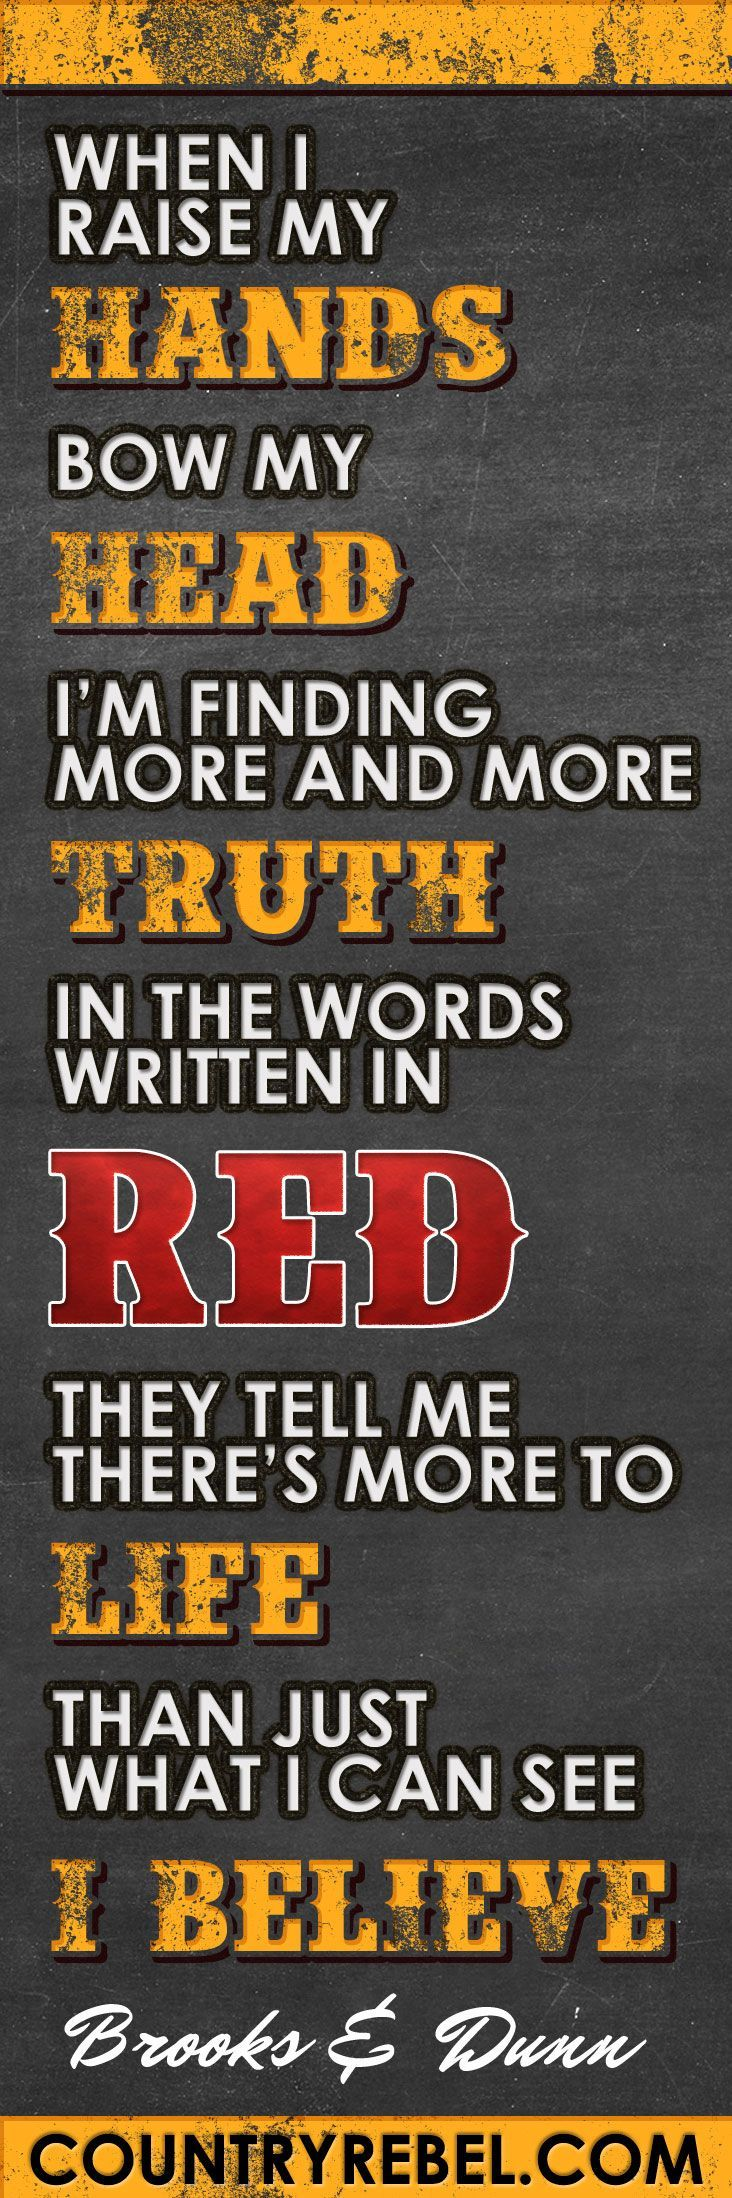 Country Music Lyrics and Quotes - Brooks and Dunn - Believe